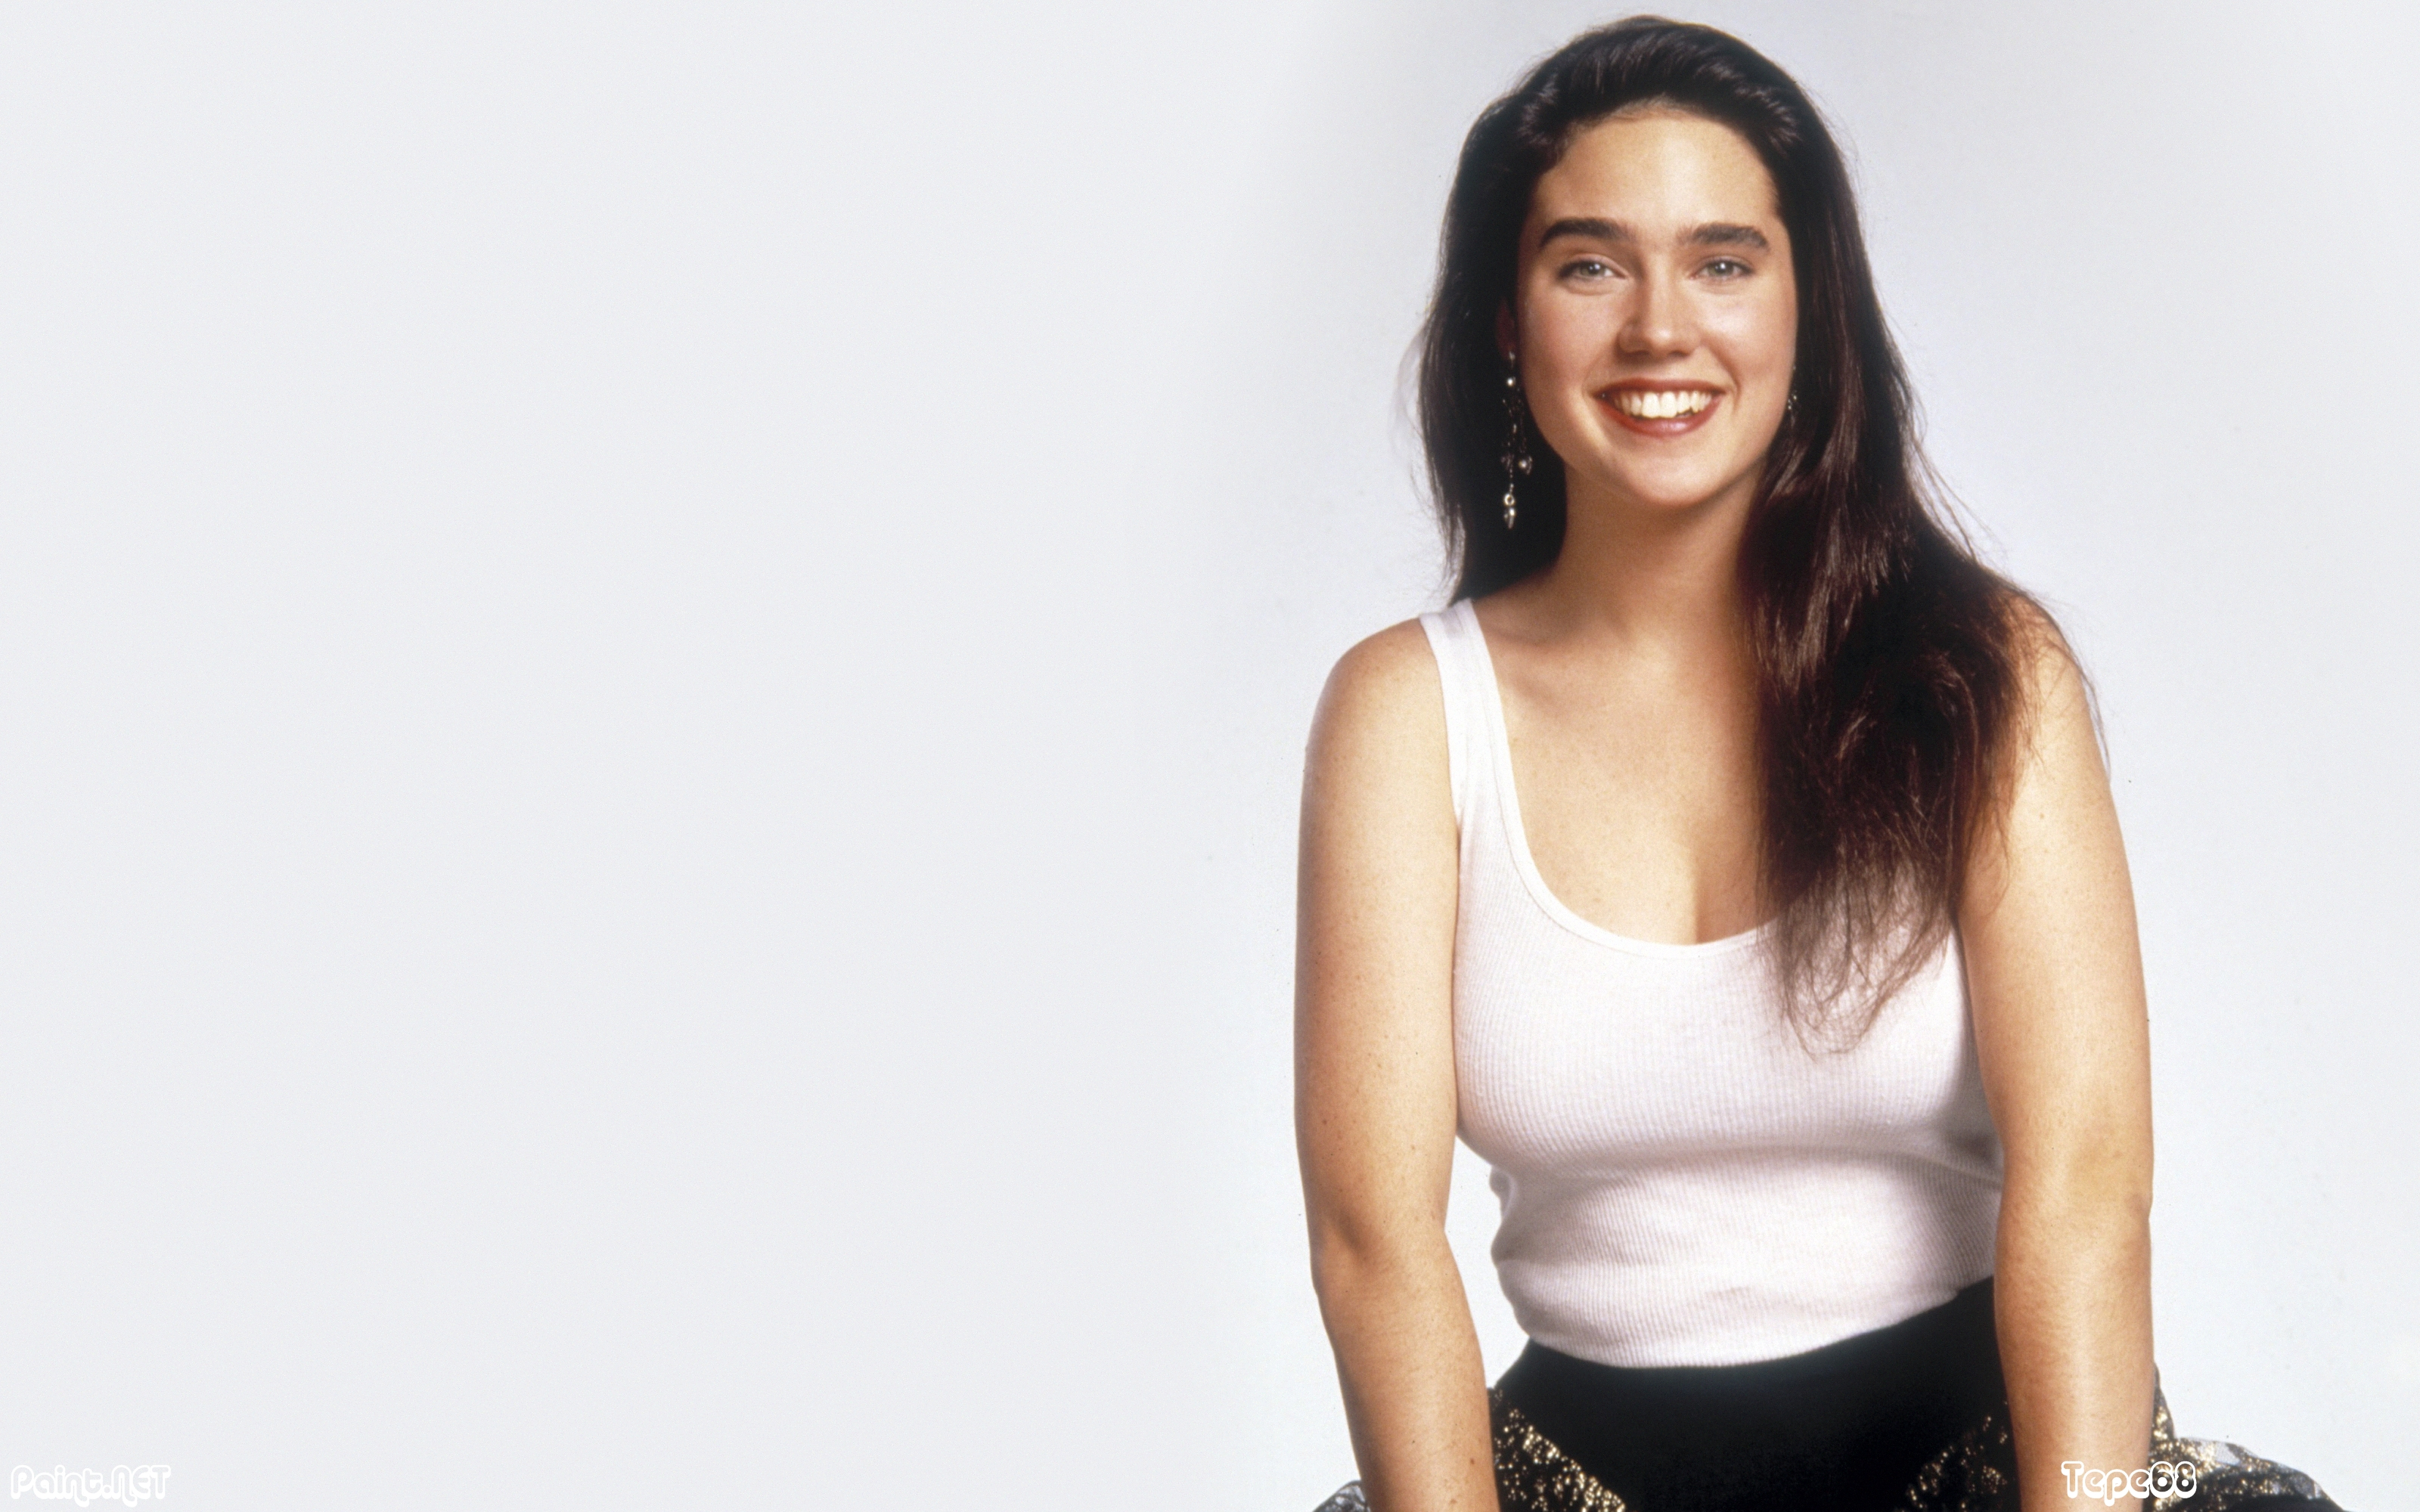 3200x2000 - Jennifer Connelly Wallpapers 20